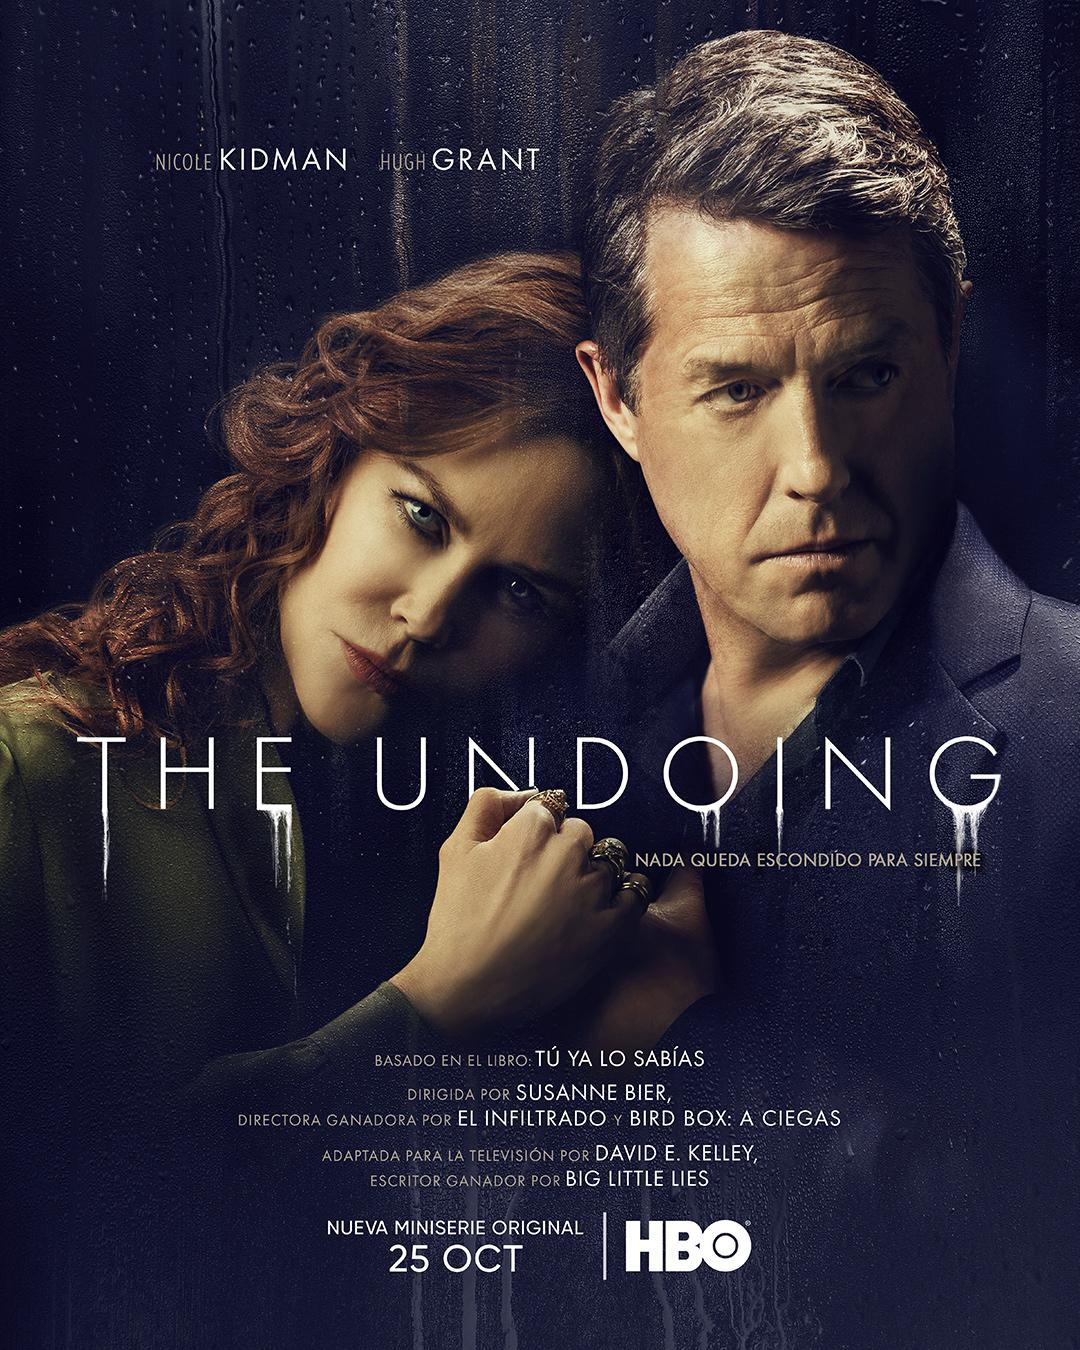 THE UNDOING KA SPANISH VERSION